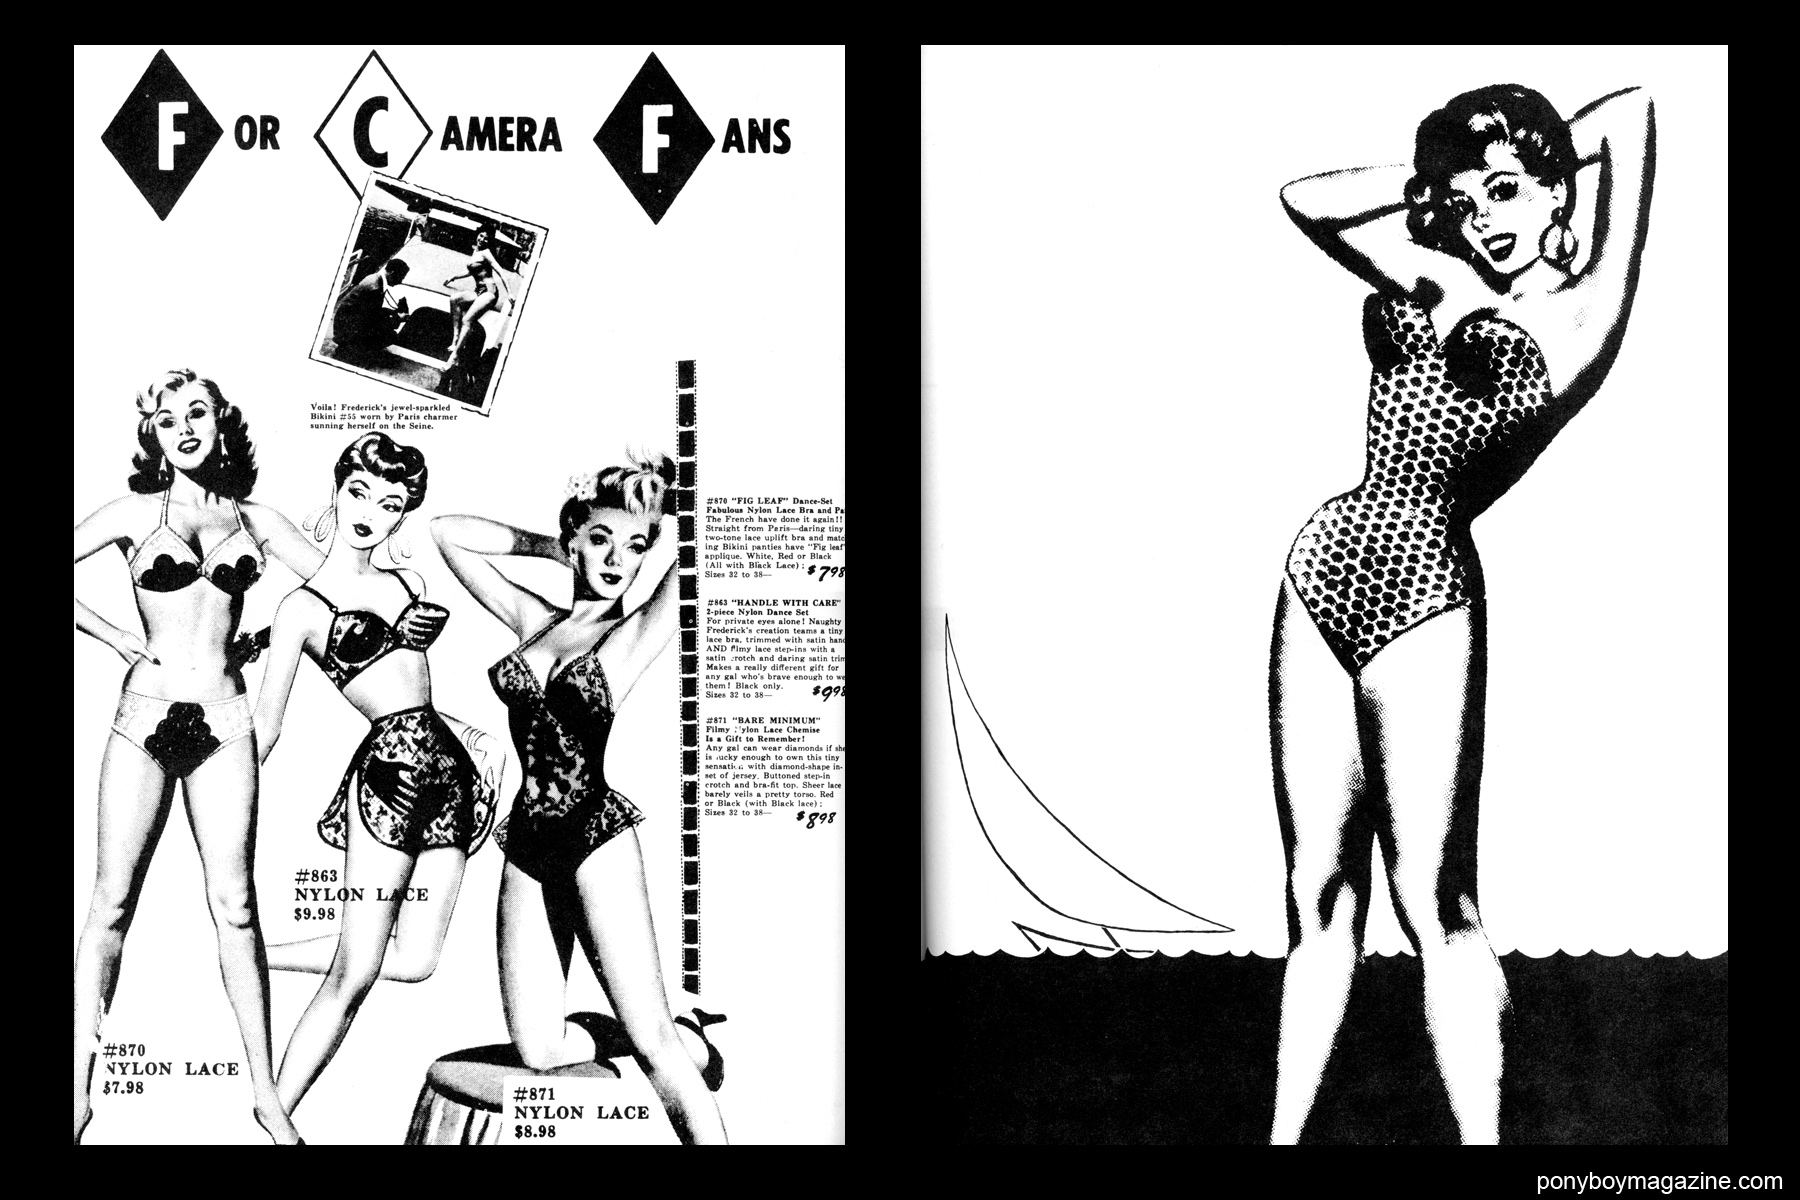 1950's women's swimsuit illustrations, FREDERICK'S OF HOLLYWOOD: 26 Years of Mail Order Seduction. Printed in 1973 by Drake Publishers. Edited by Laura & Janusz Gottwald, Ponyboy Magazine from New York City.